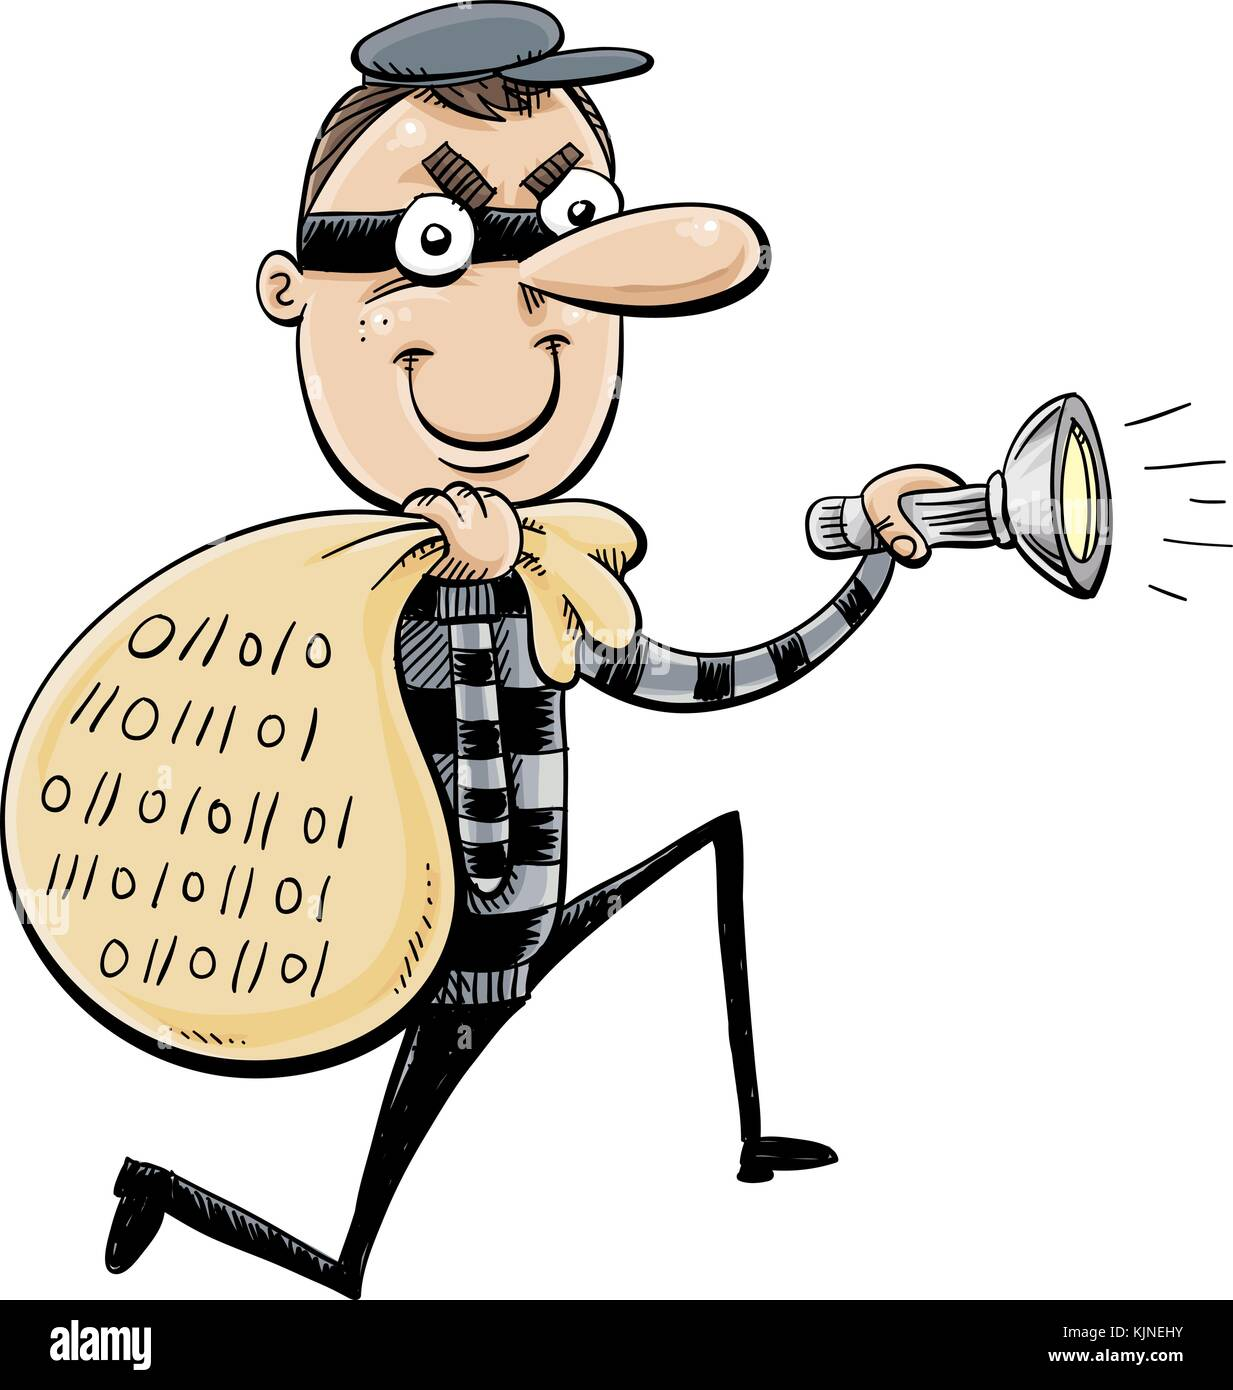 A cartoon of a thief with a sack full of data and holding a flashlight. - Stock Vector